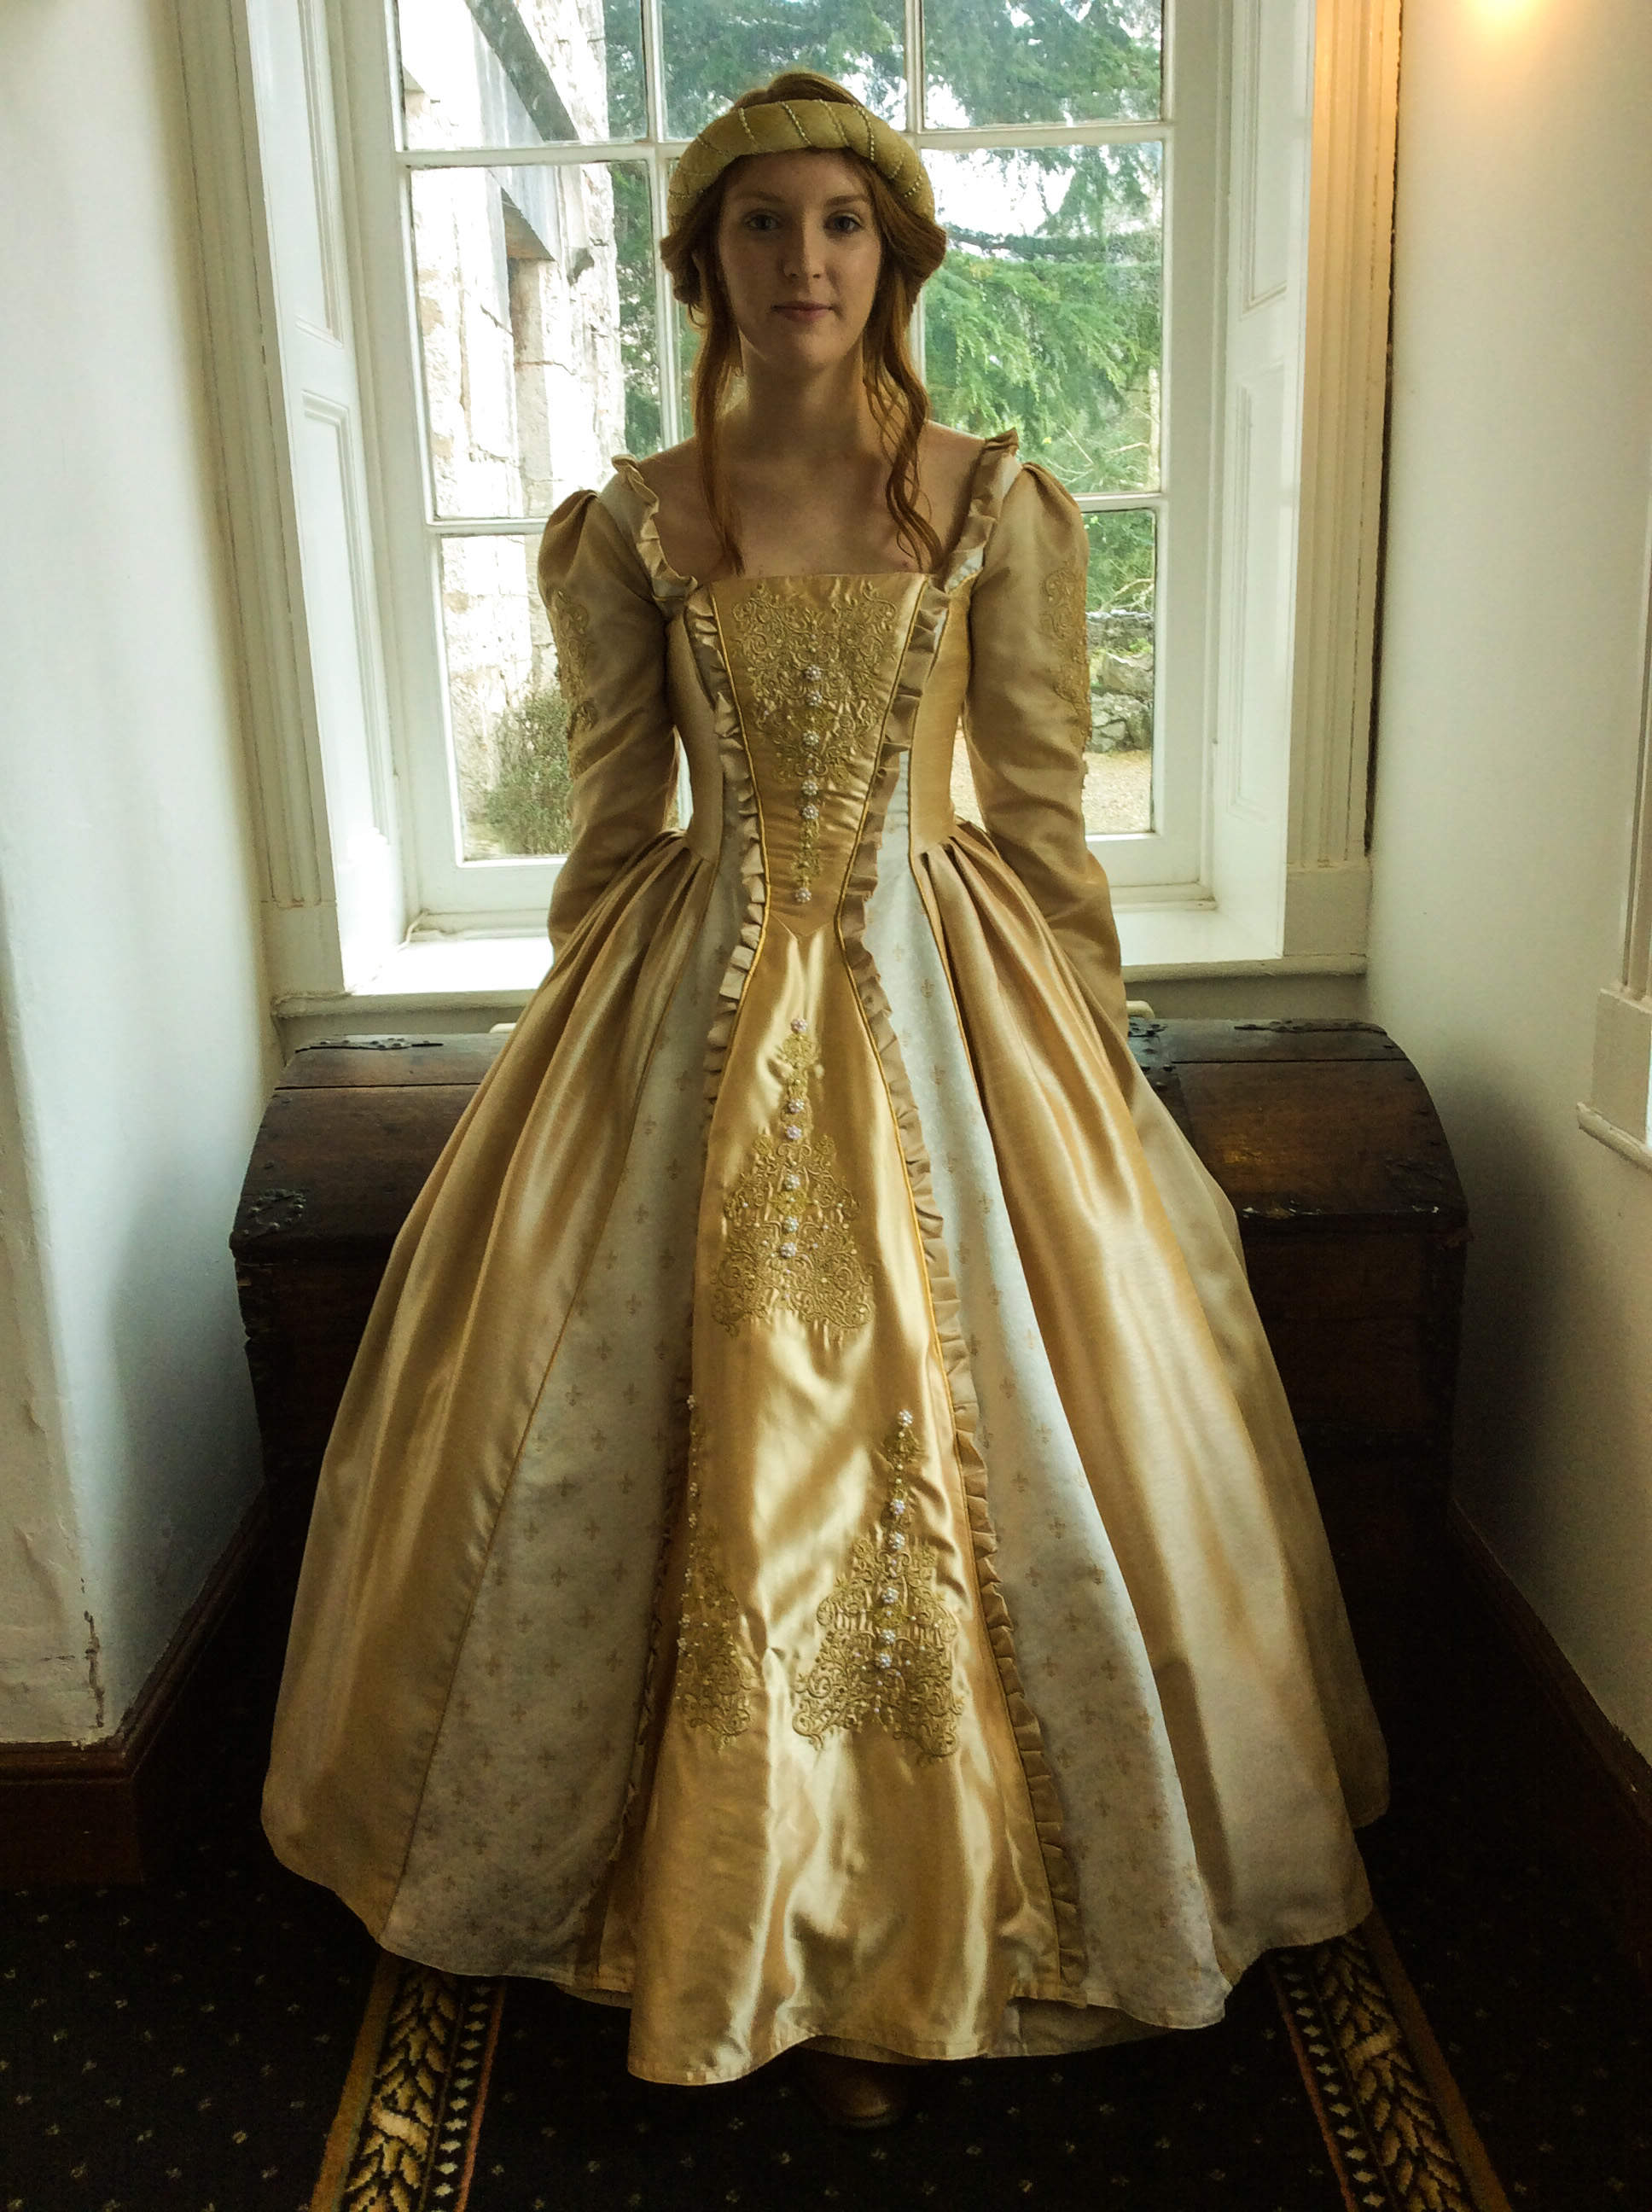 Warm gold medieval gown with big skirt. Heavy embroidery and light beadwork